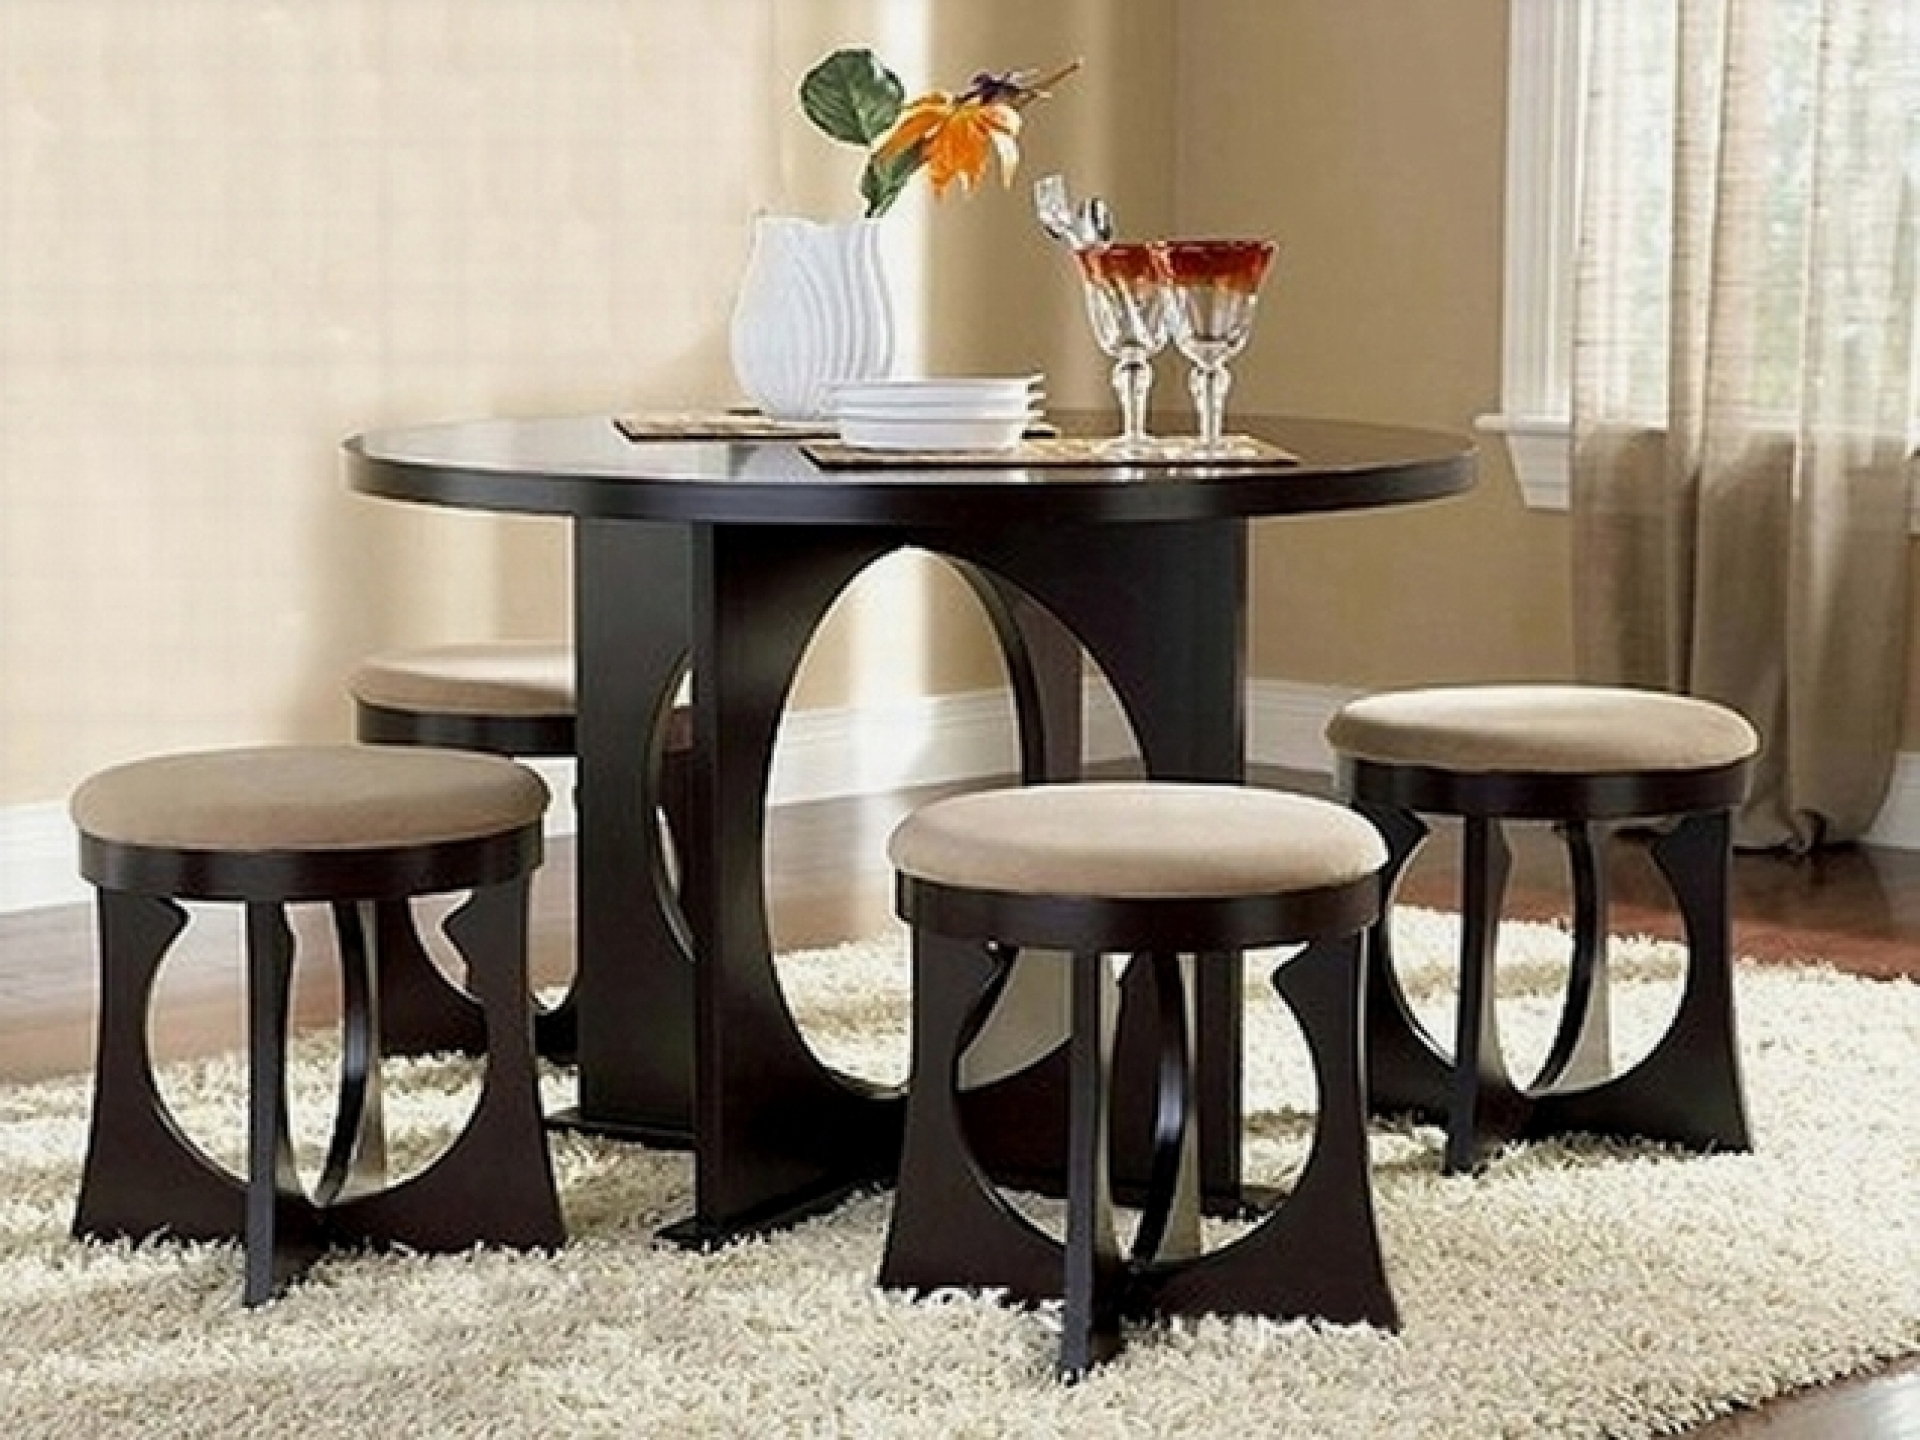 surprising-round-dining-tables-for-small-spaces-fresh-on-model-gallery